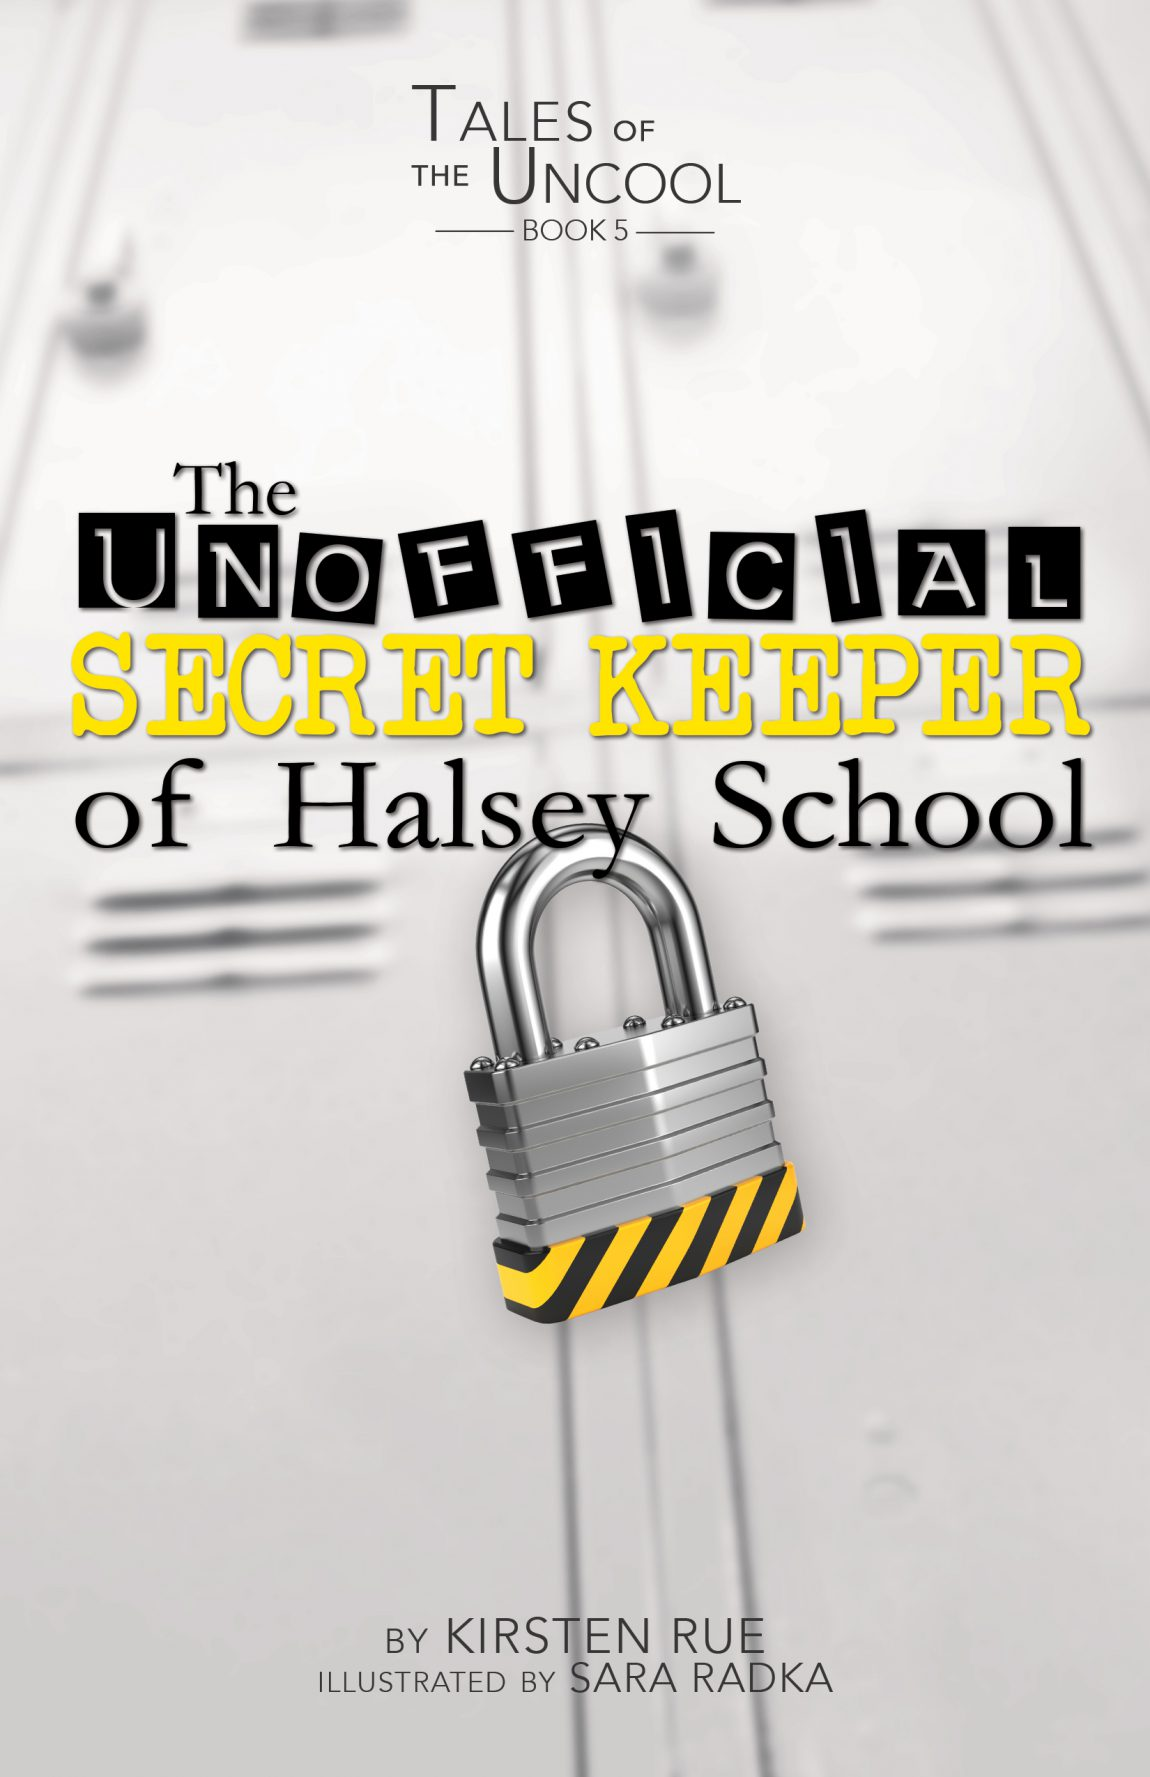 The-Unofficial-Secret-Keeper-of-Halsey-School-1.jpg